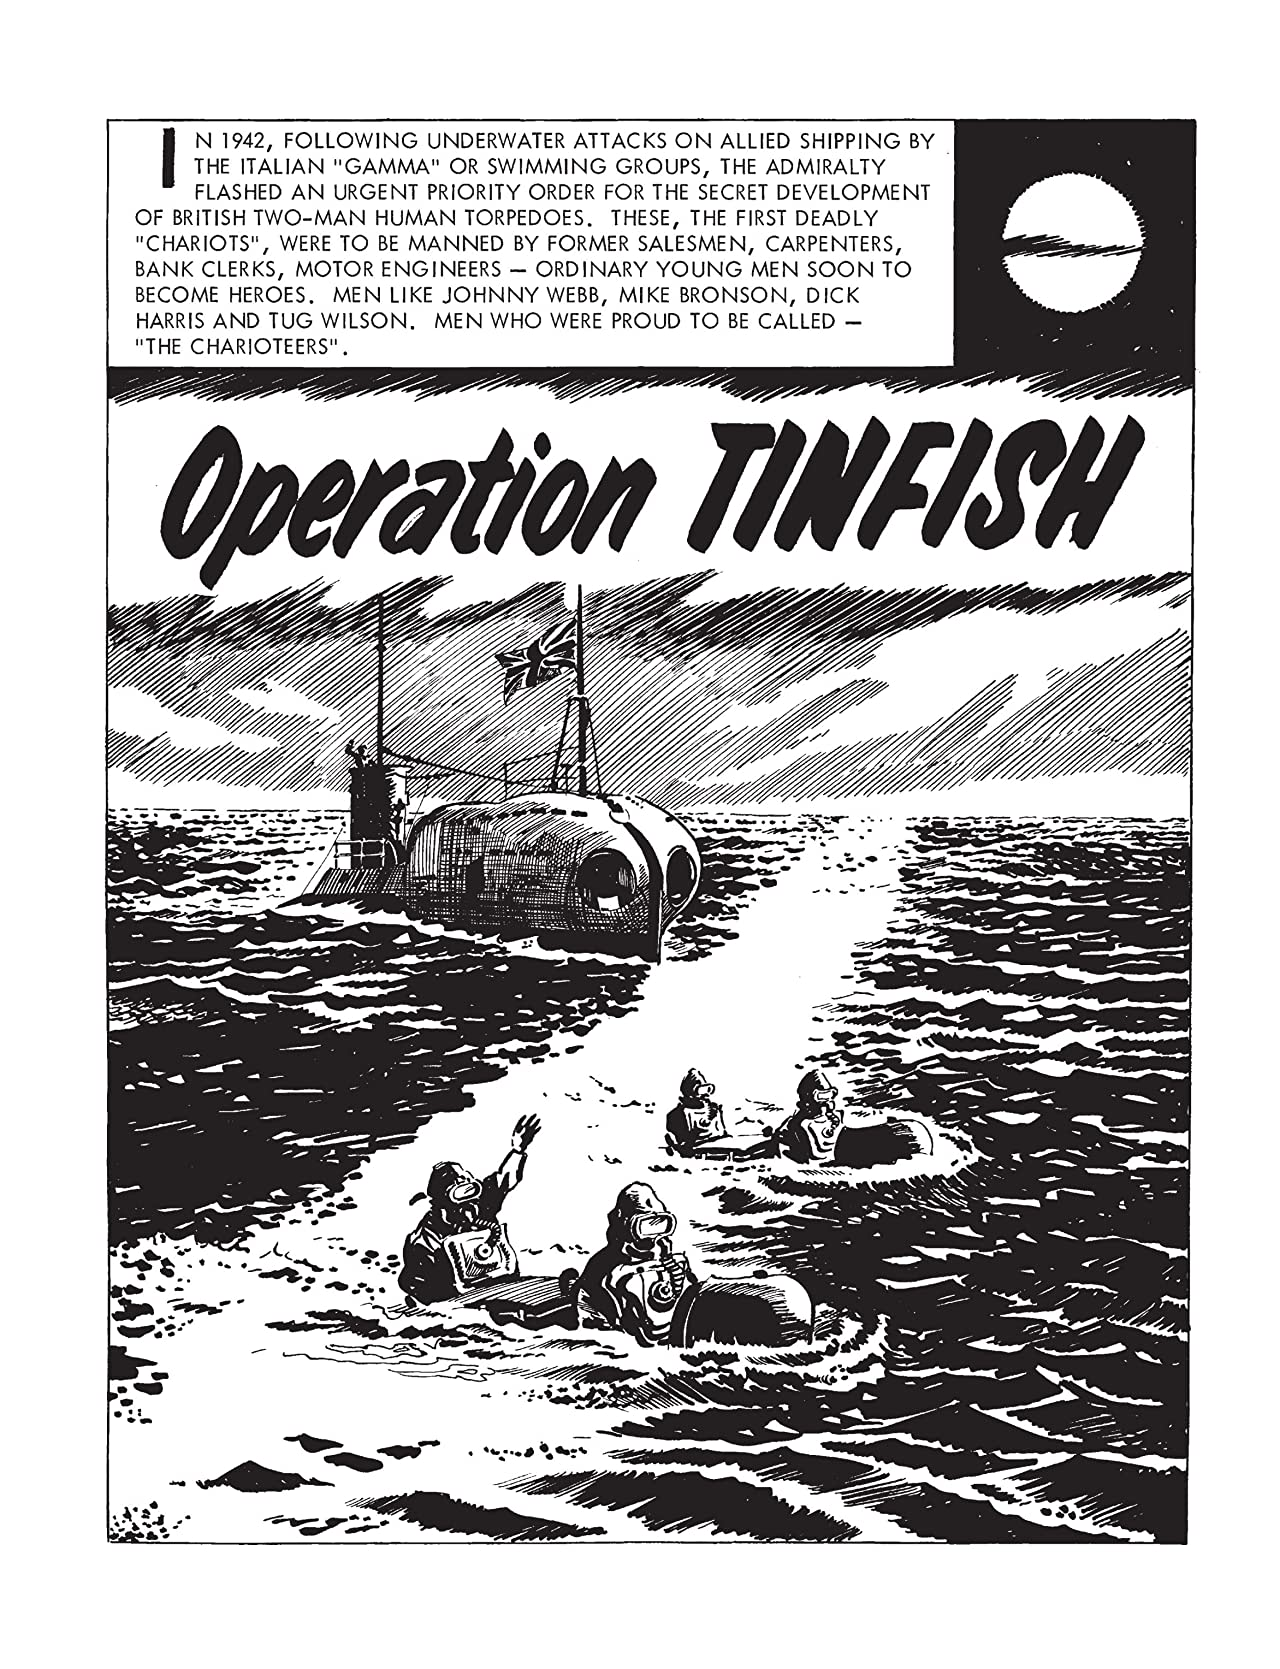 Commando #4816: Operation Tinfish